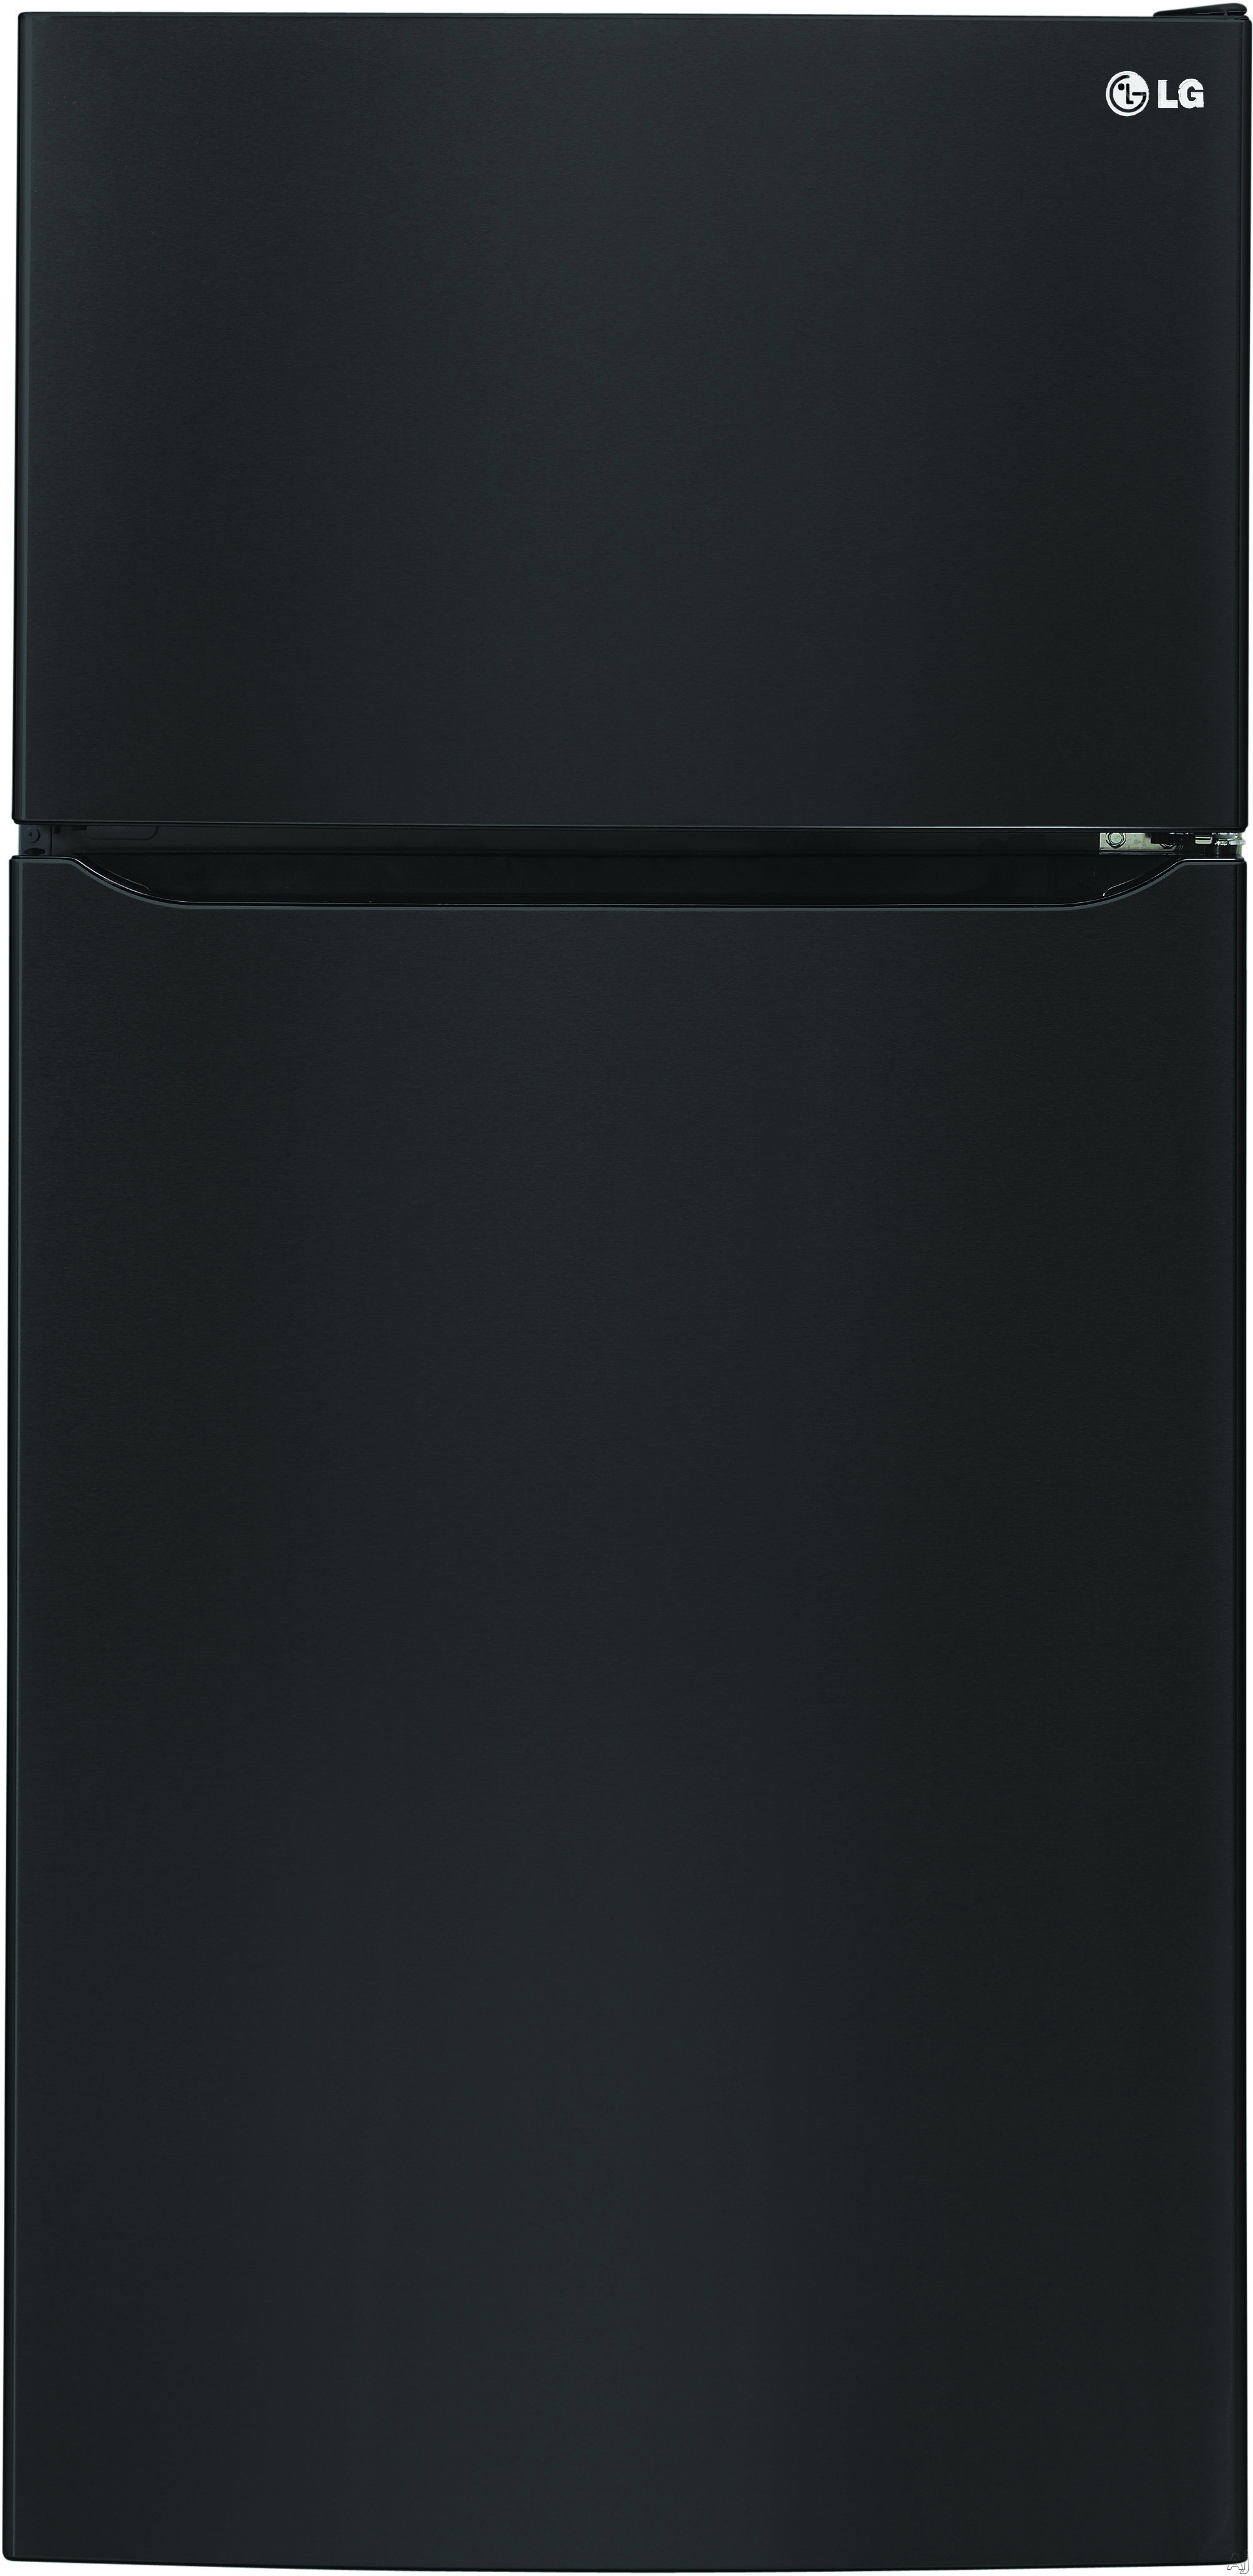 Image of LG LTCS20220B 30 Inch Top-Freezer Refrigerator with Ice Maker, Glide N' Serve® Pantry Drawer, Gallon Door Storage, Humidity-Controlled Crisper Drawers, Premium LED Lighting, ENERGY STAR® and 20.2 cu. ft. Capacity: Black